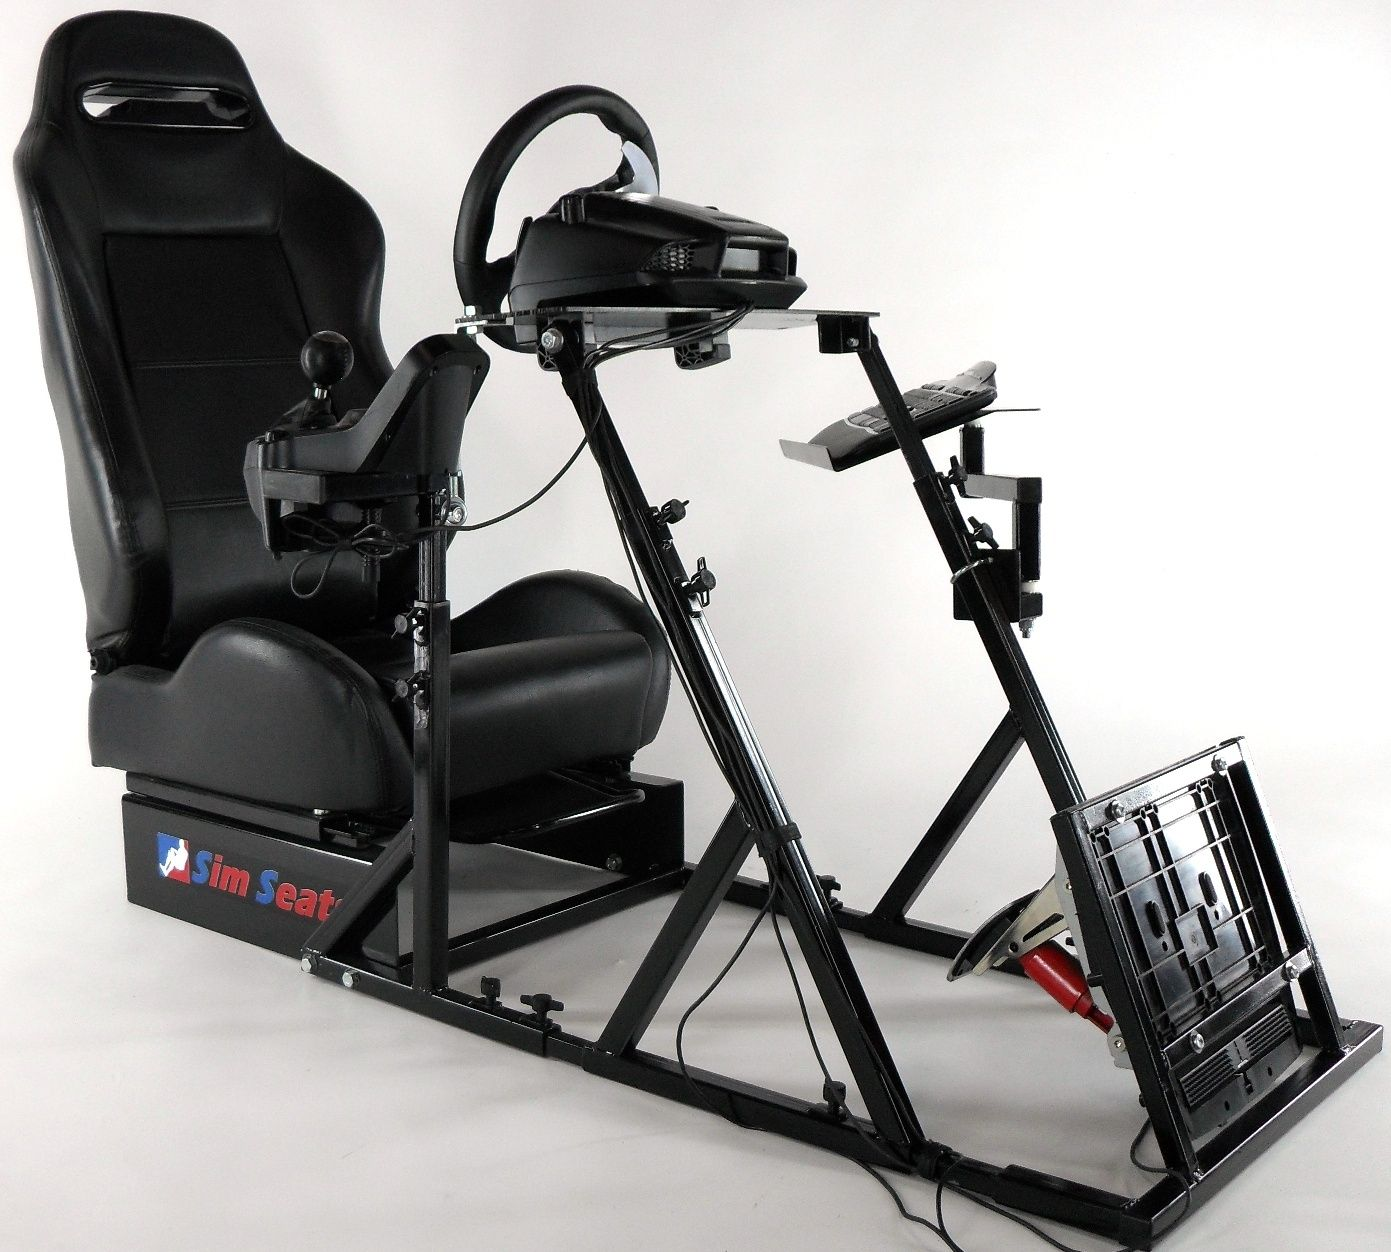 sr x driving simulator racing rig pinterest. Black Bedroom Furniture Sets. Home Design Ideas